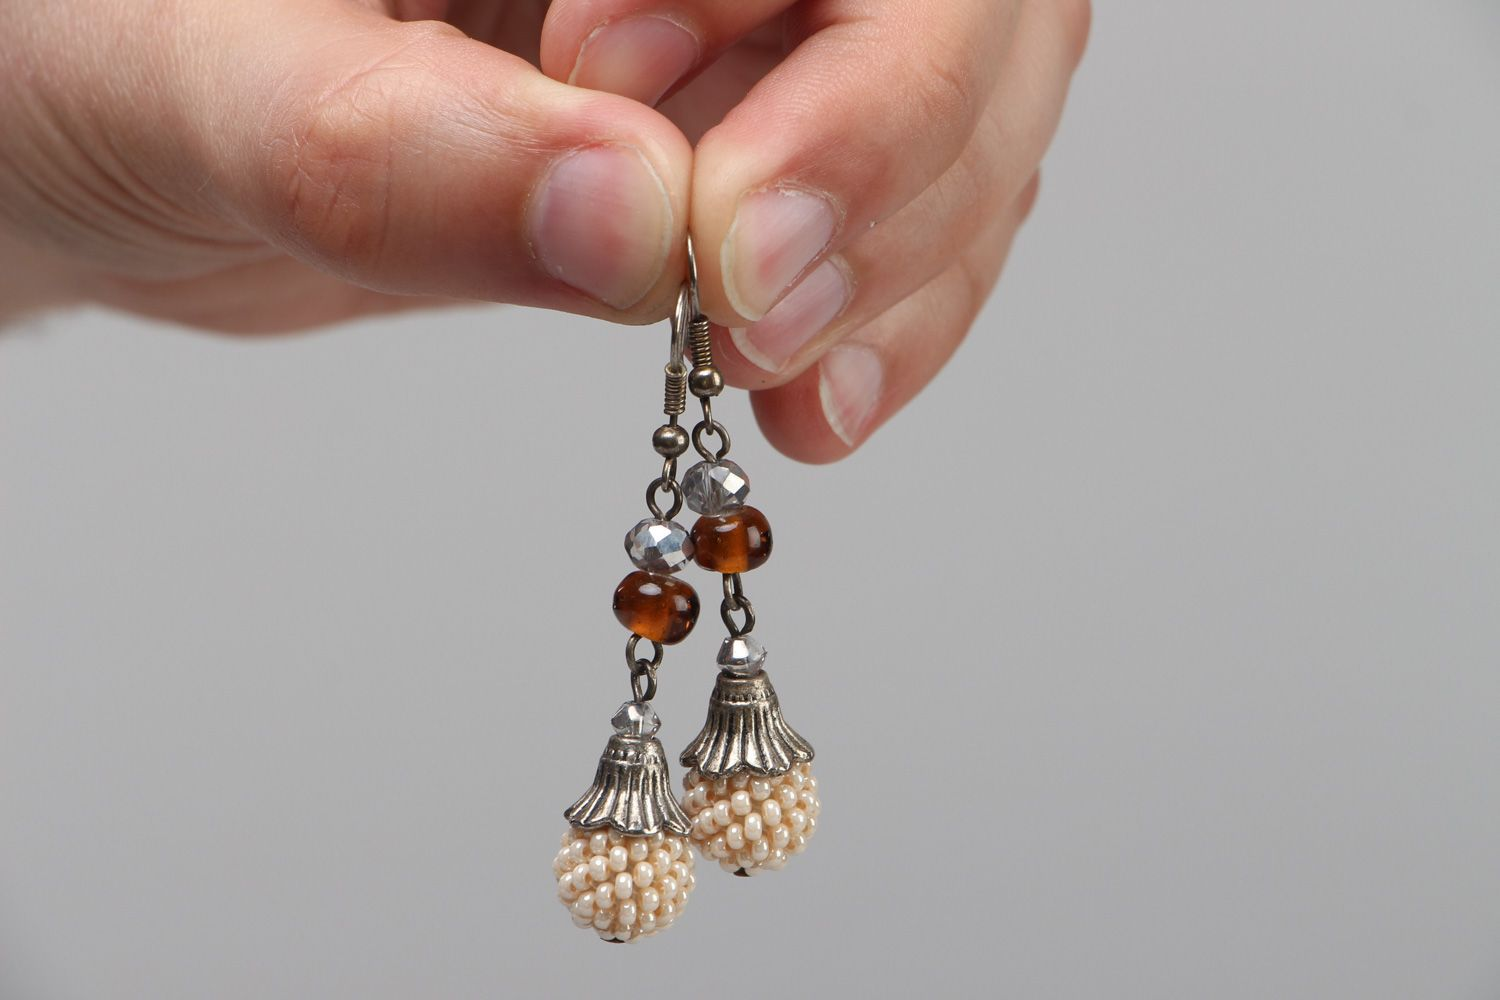 Handmade festive dangle earrings with Czech and glass beads in light color palette photo 3